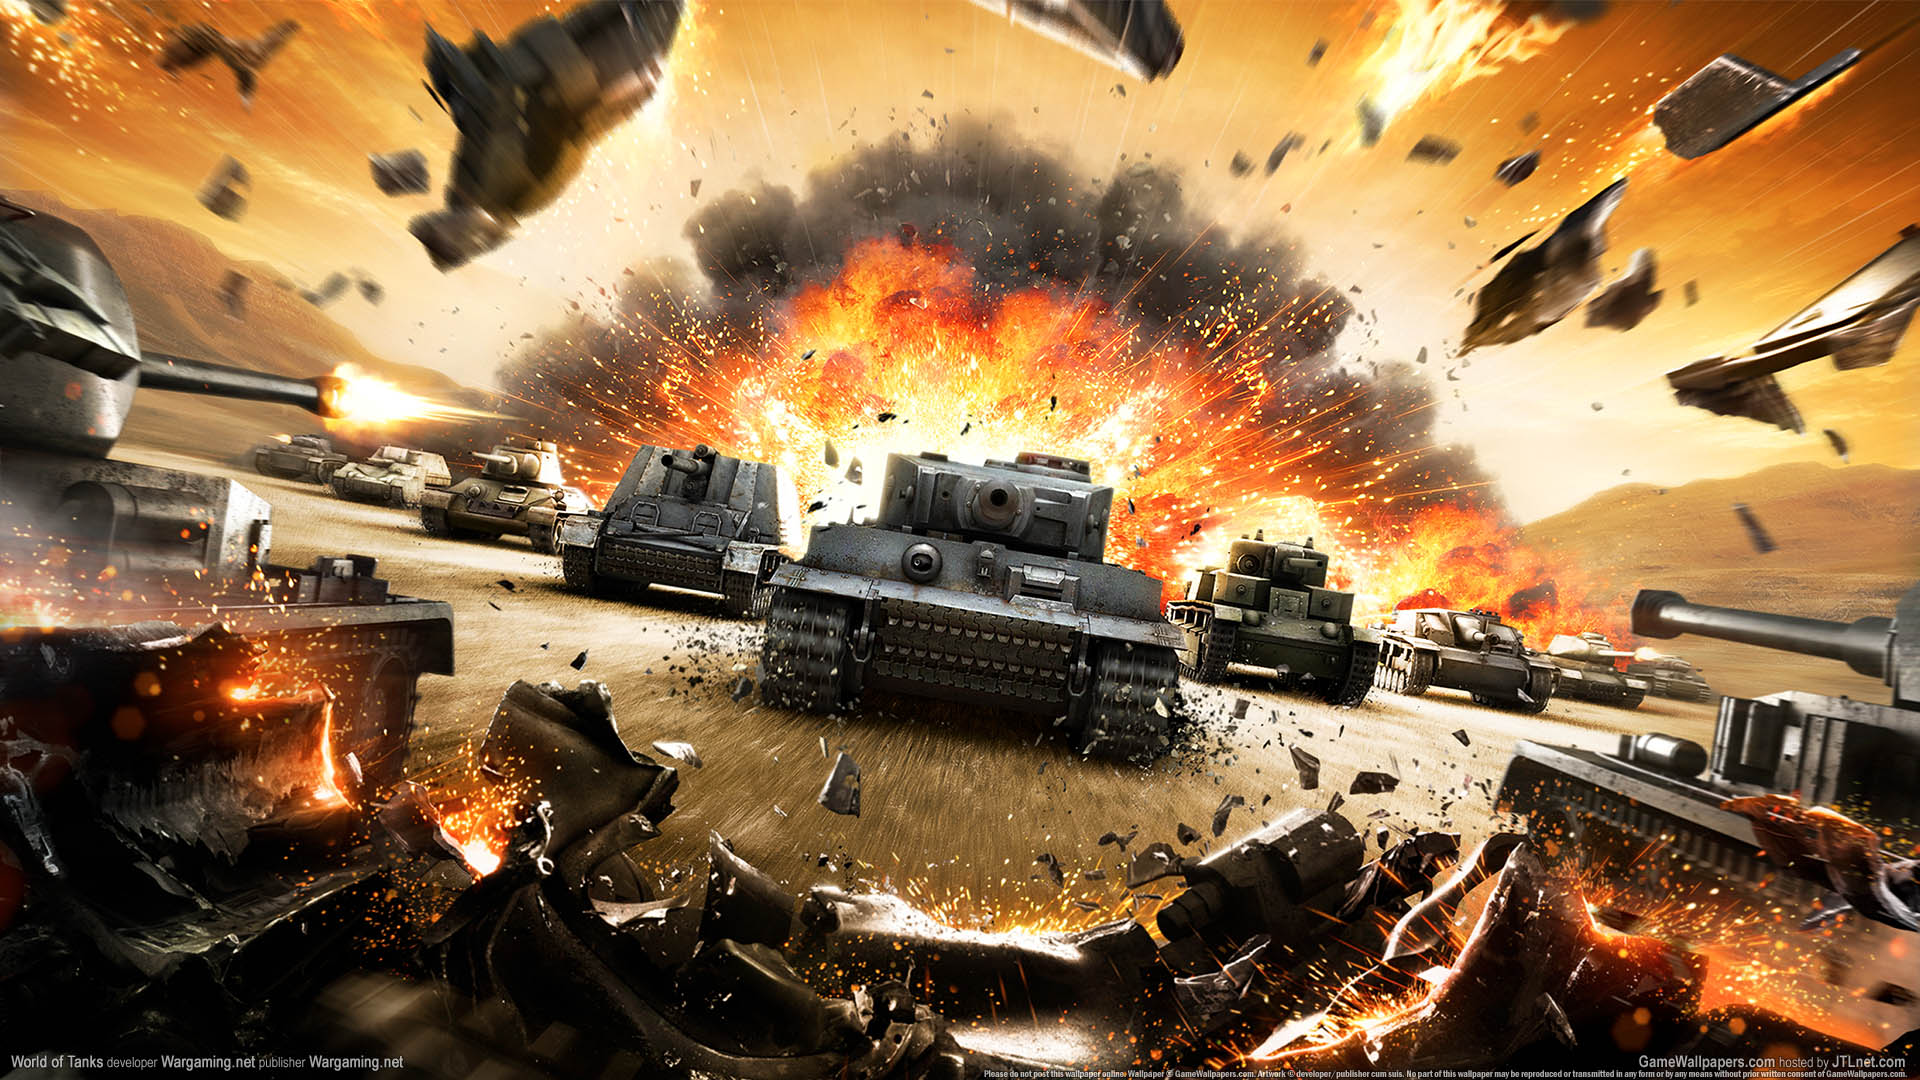 World of Tanks wallpaper 01 1920x1080